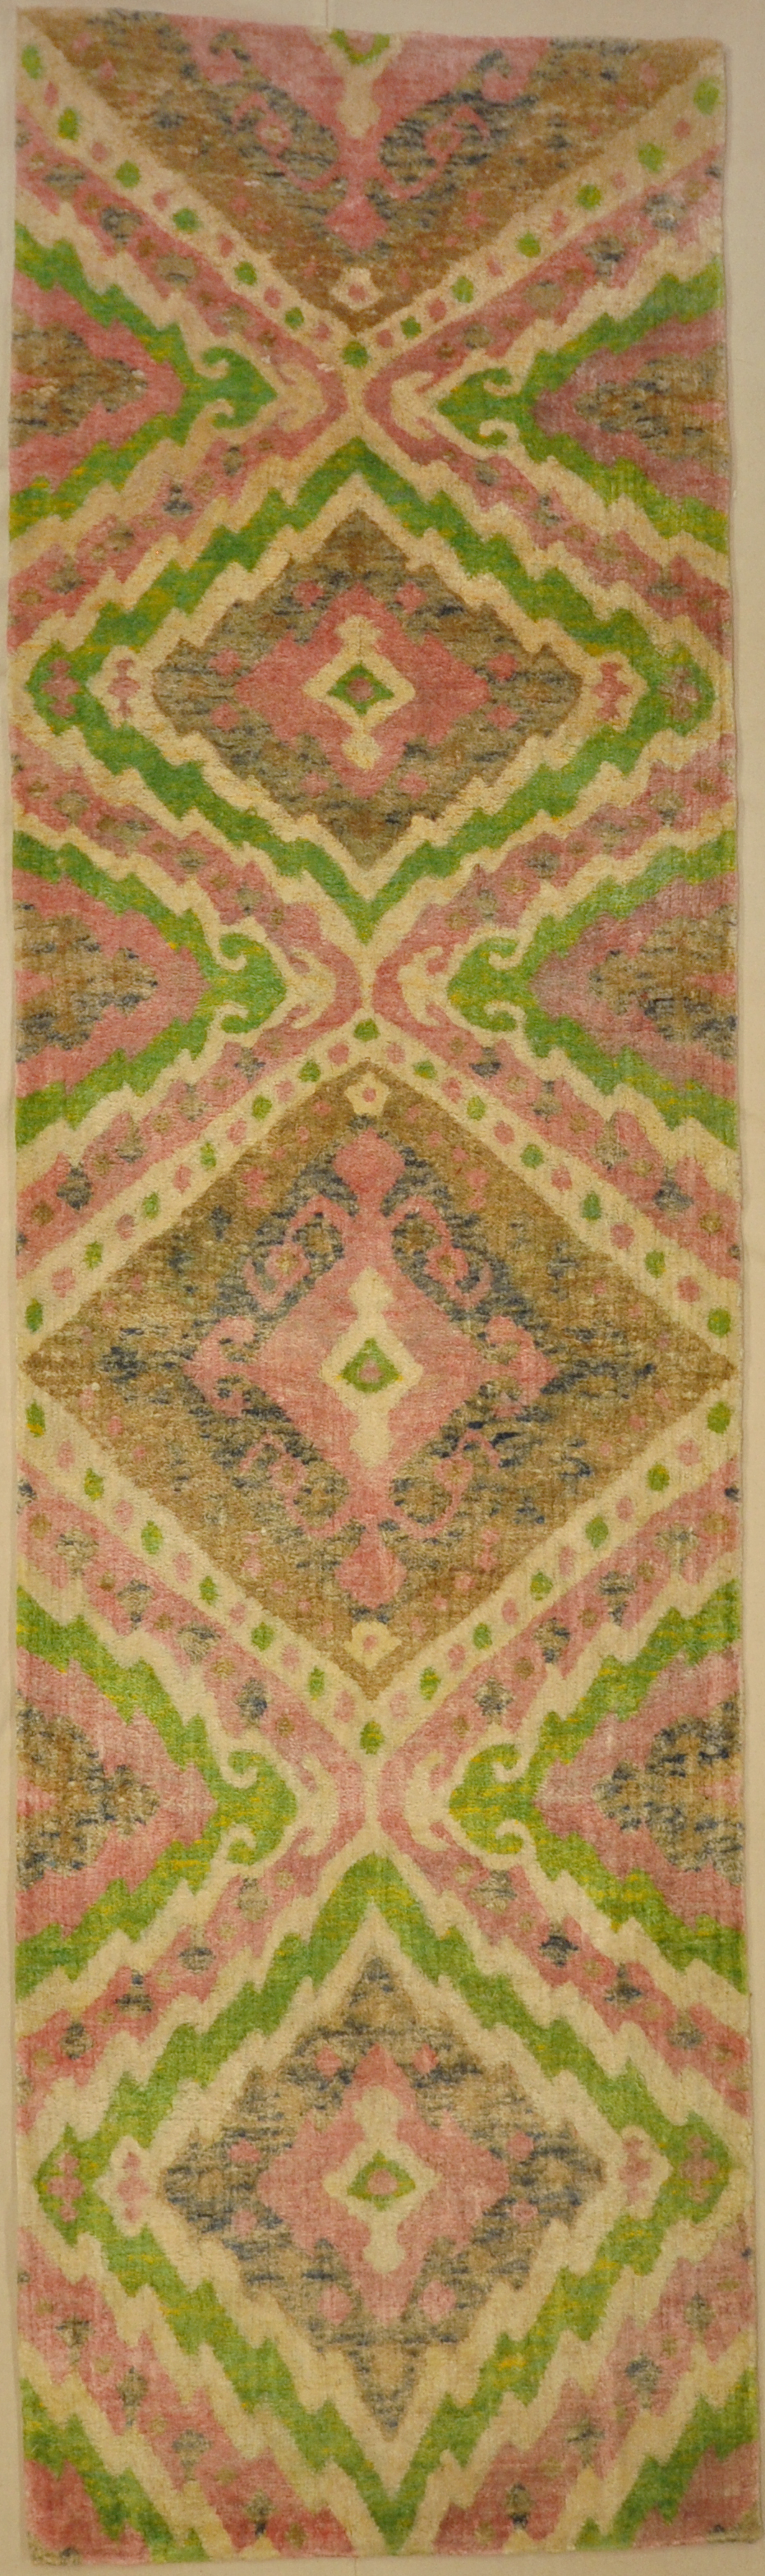 Lovely Patterned Green and Pink Runner. A piece of genuine woven authentic carpet art sold by Santa Barbara Design Center, Rugs and More.